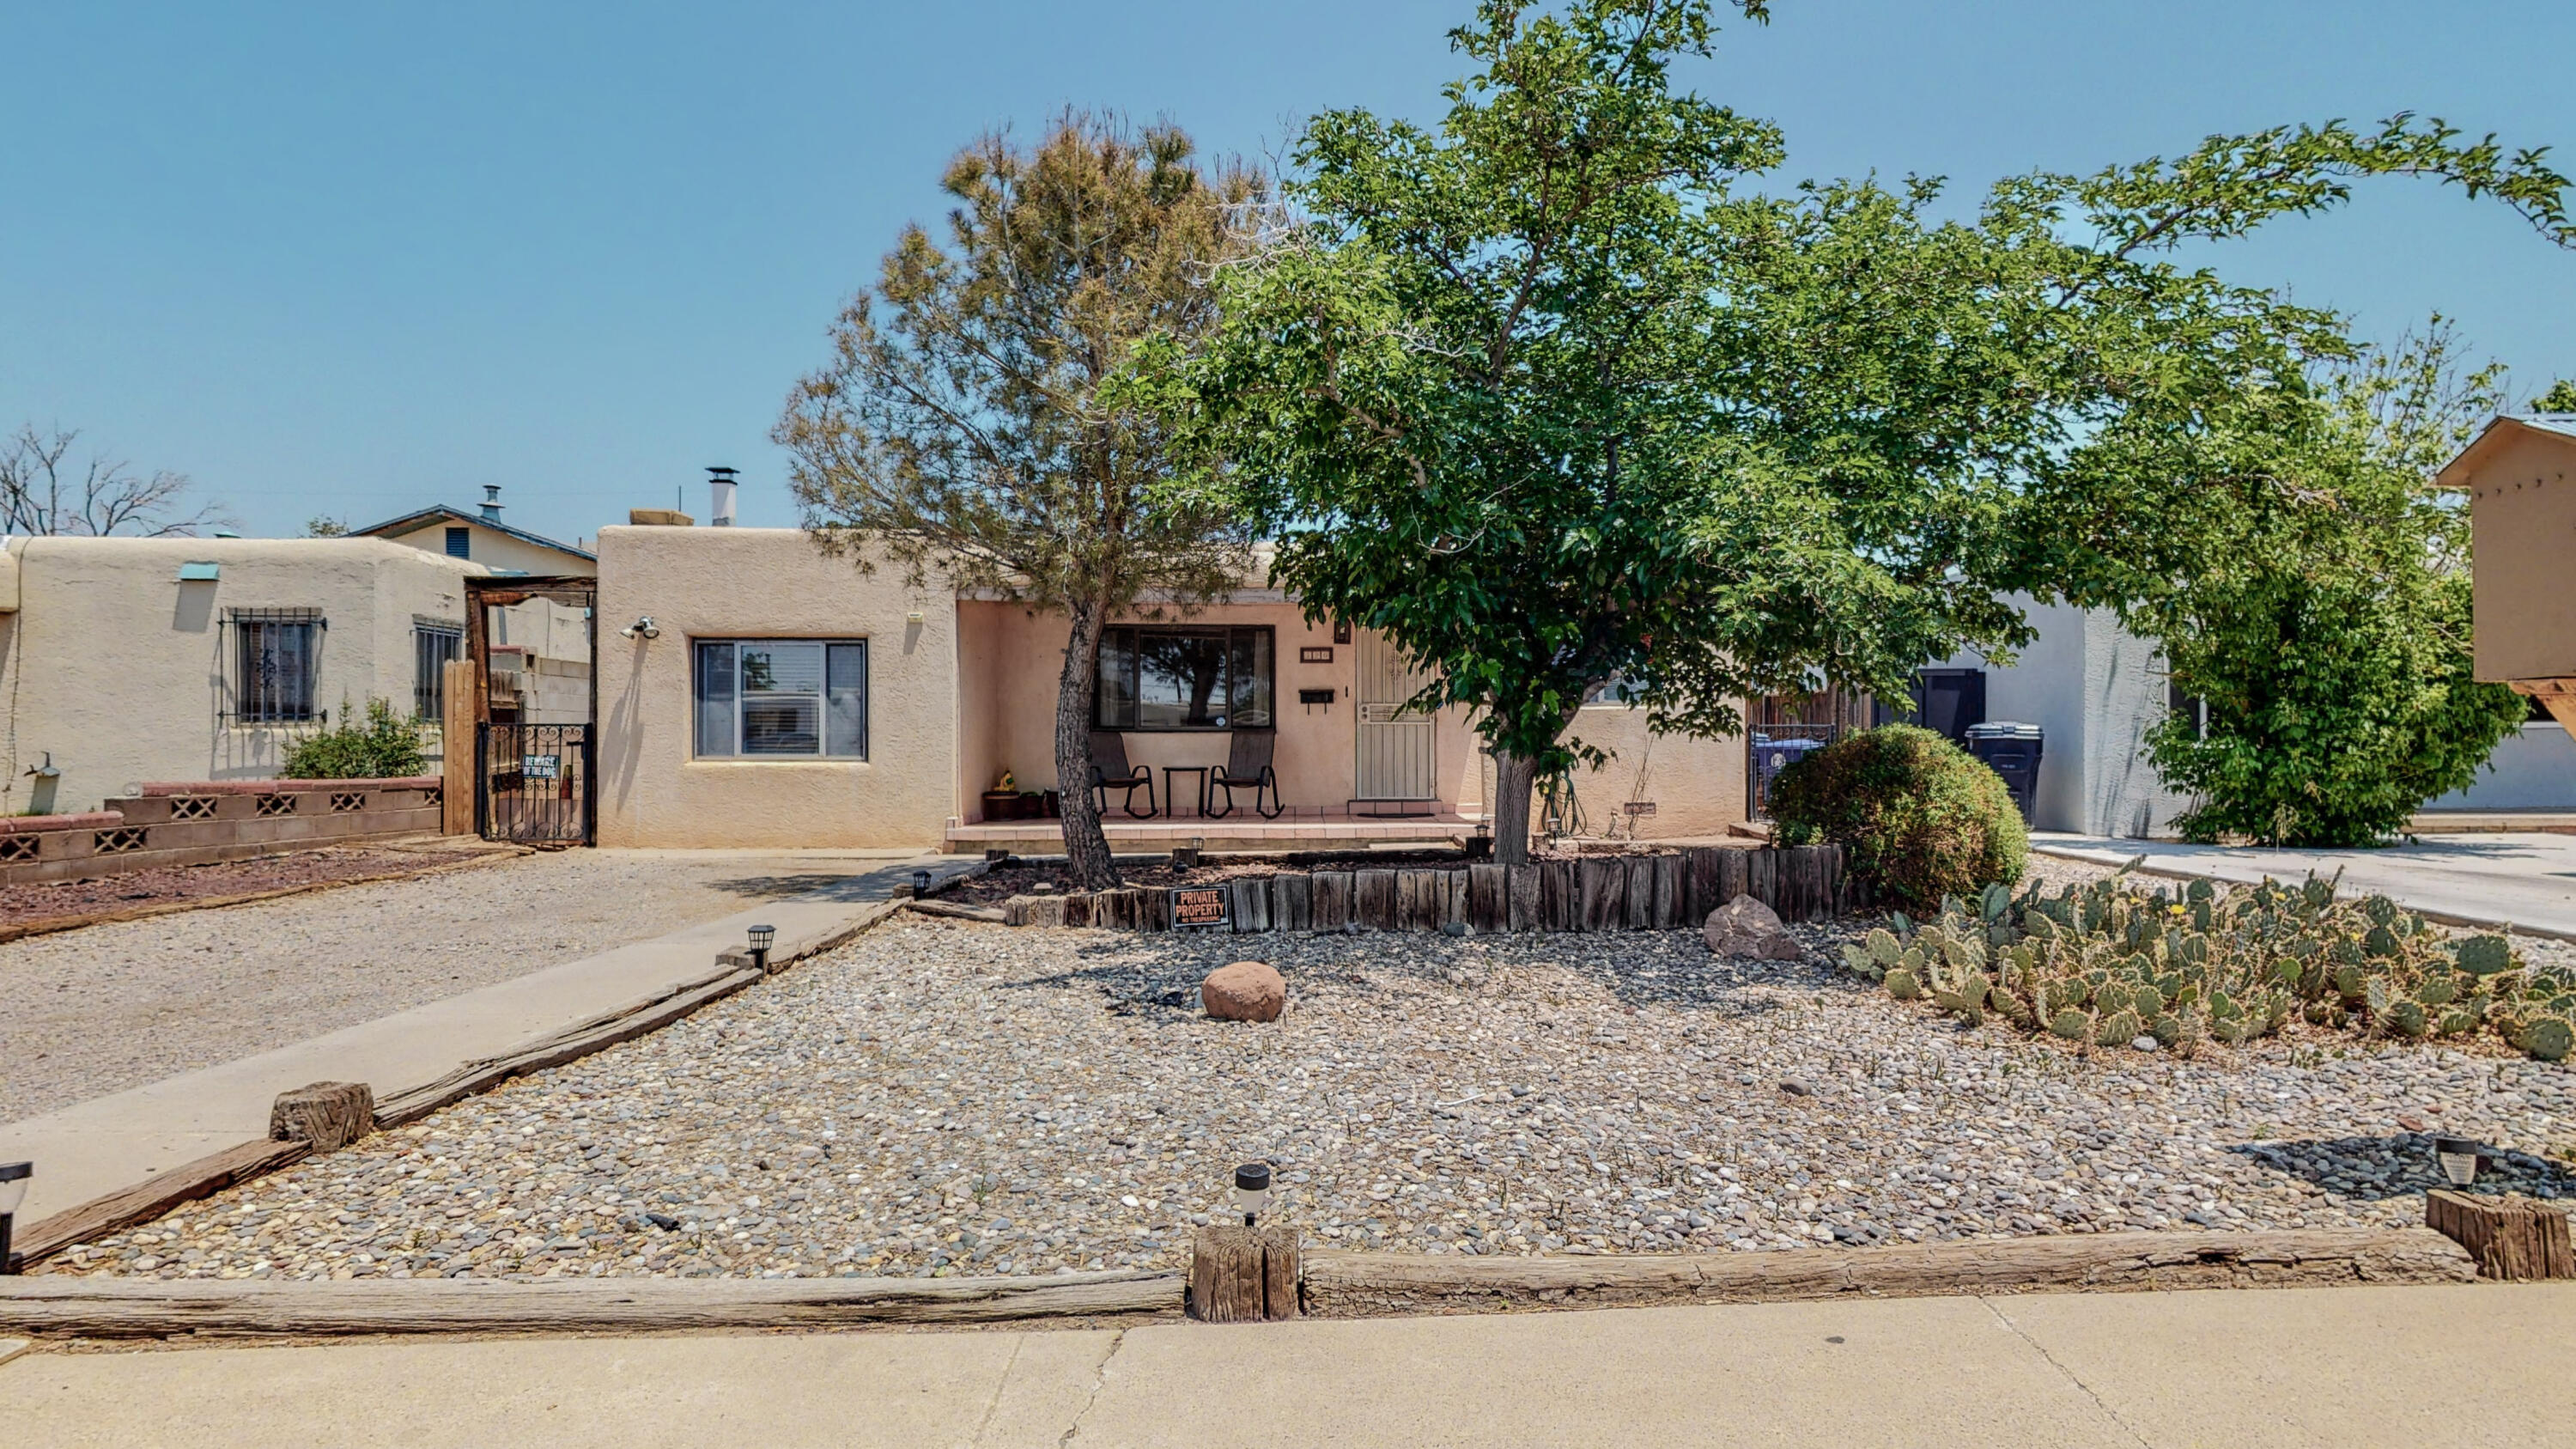 What a charmer!  Sip tea on your front porch as you enjoy the quiet block and lovely xeriscaped front yard.  Inside of this cutie, you'll find a spacious living room with hardwood floors and a step-down den with a custom wood-burning fireplace. Off the den is a dining area with plenty of storage and access to the big backyard.  Back inside is an adorable, bright kitchen with stainless steel appliances.  Two good-sized bedrooms and a full bath complete this home.  Great starter home!